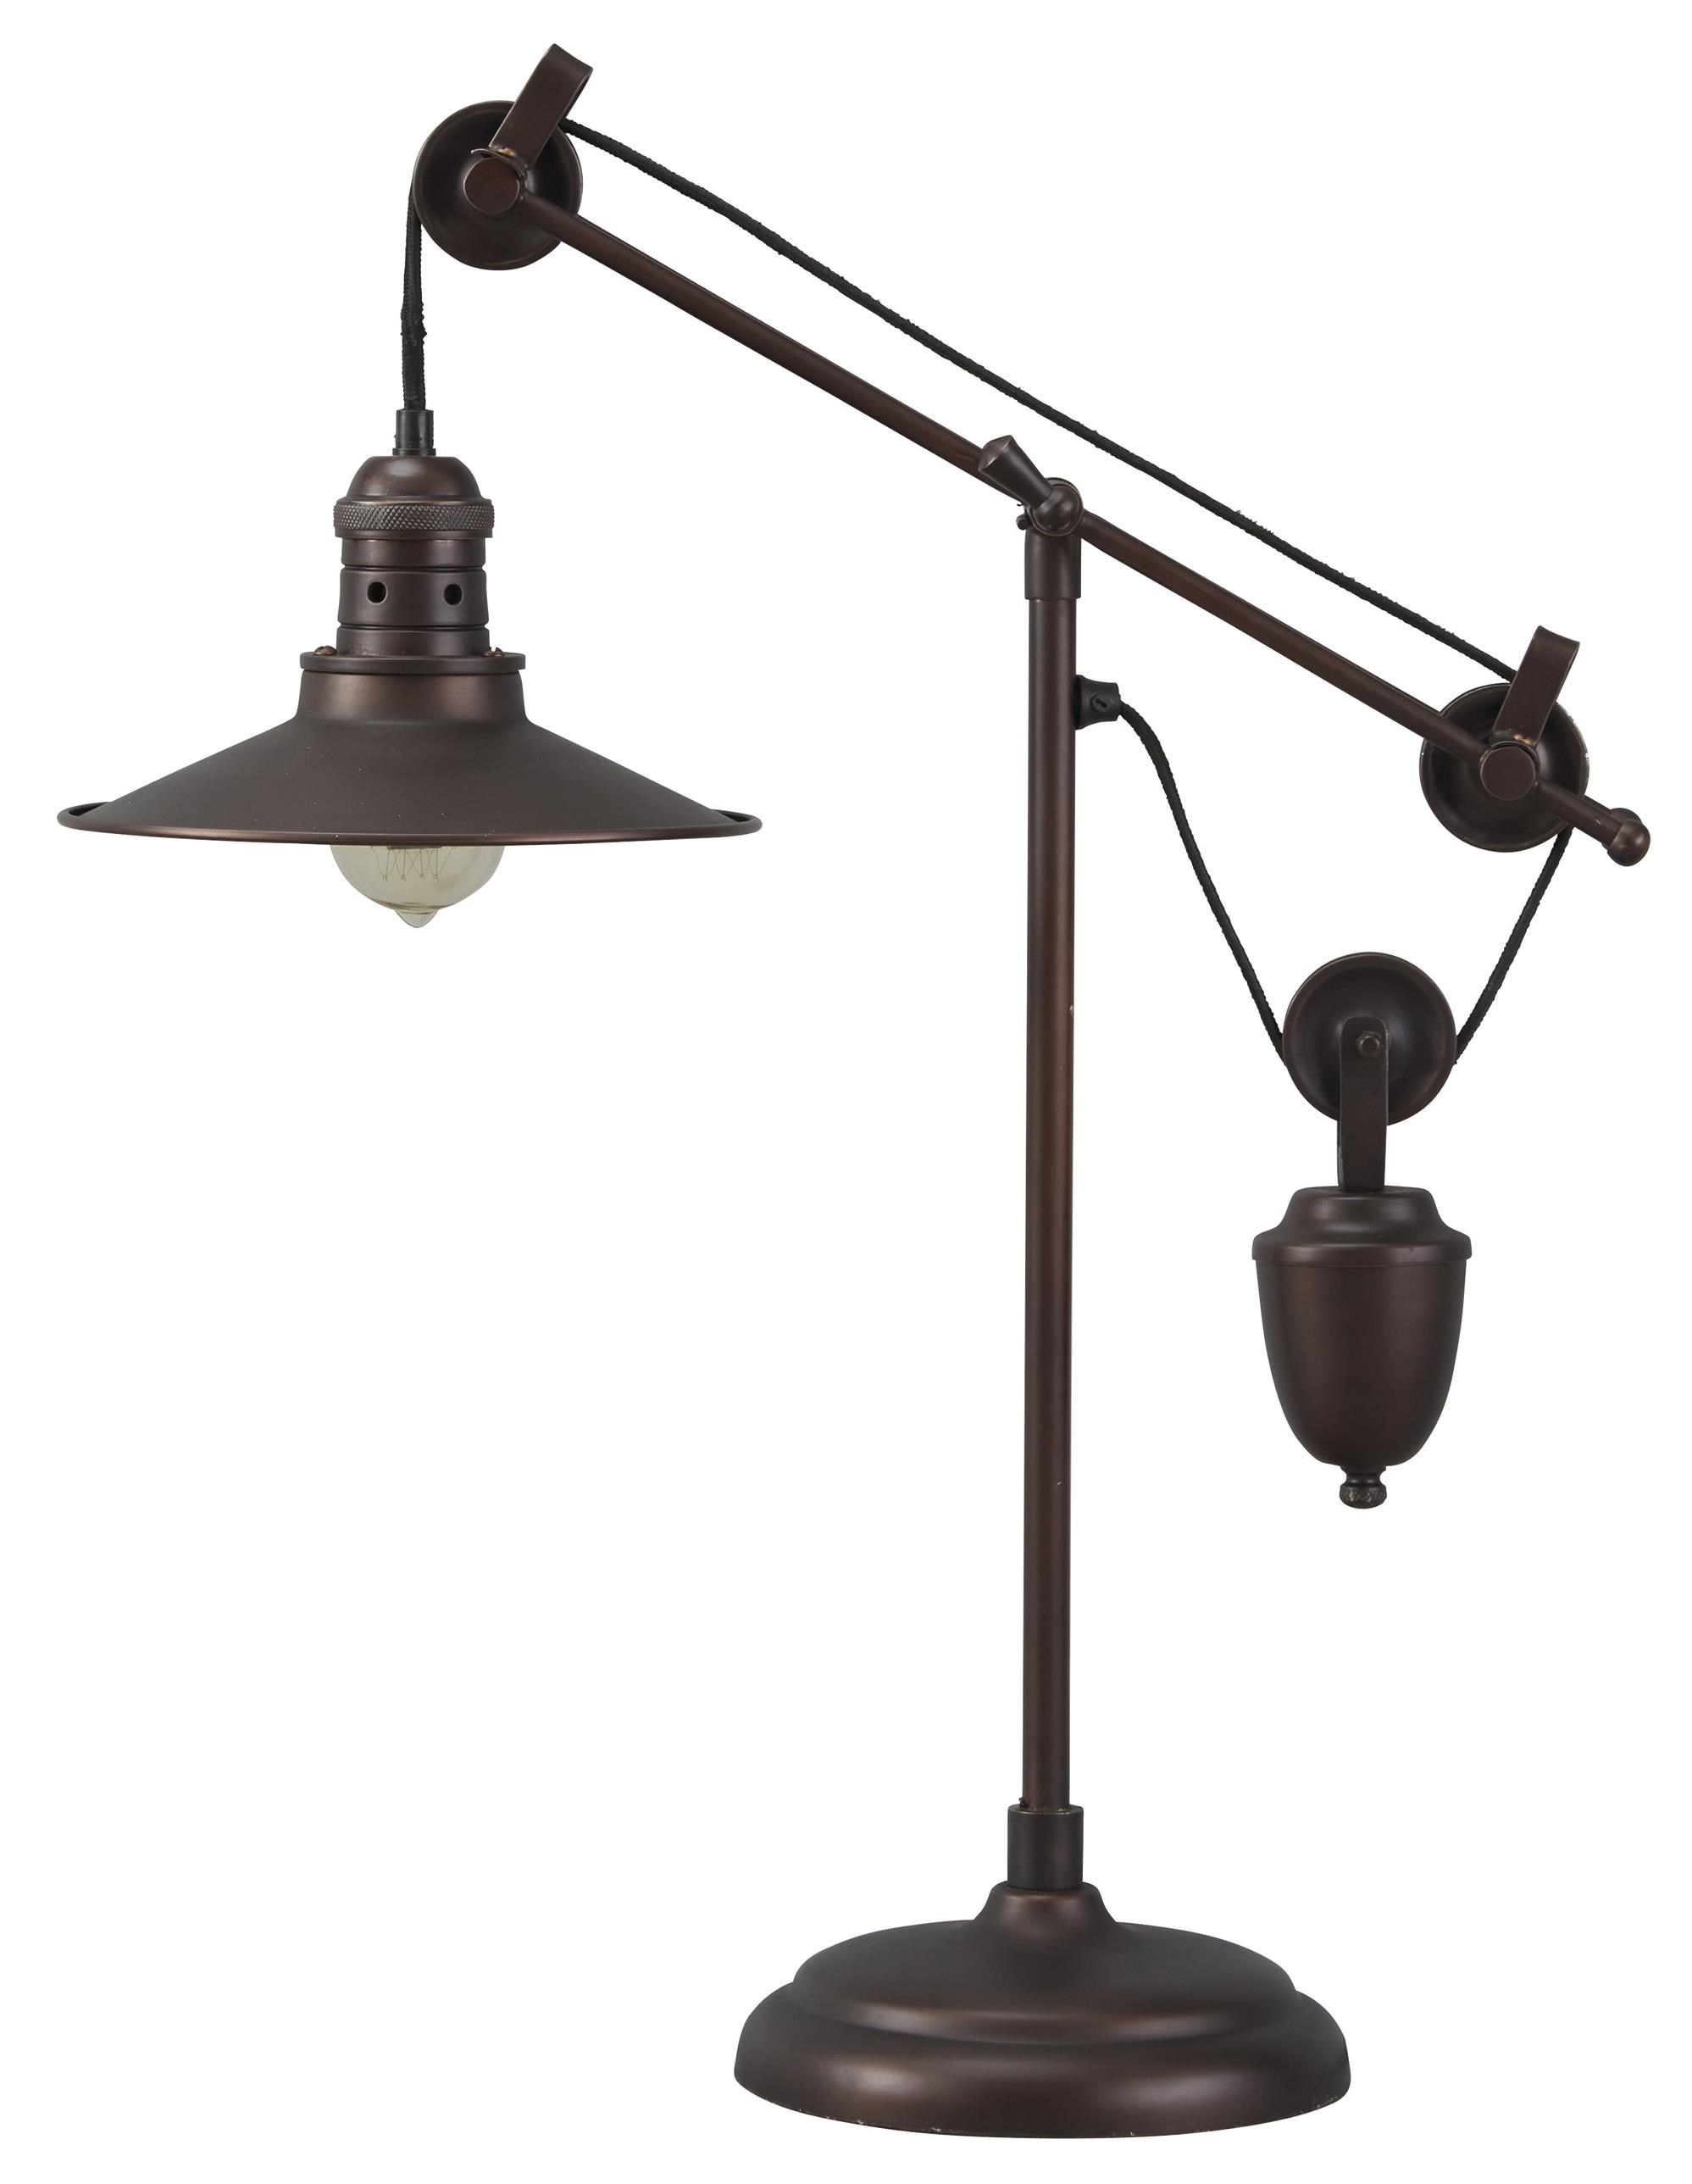 Oil Rubbed Bronze Wall Sconce Option Style Lamps - Vintage Style Kylen Metal Desk Lamp by Ashley Signature Design